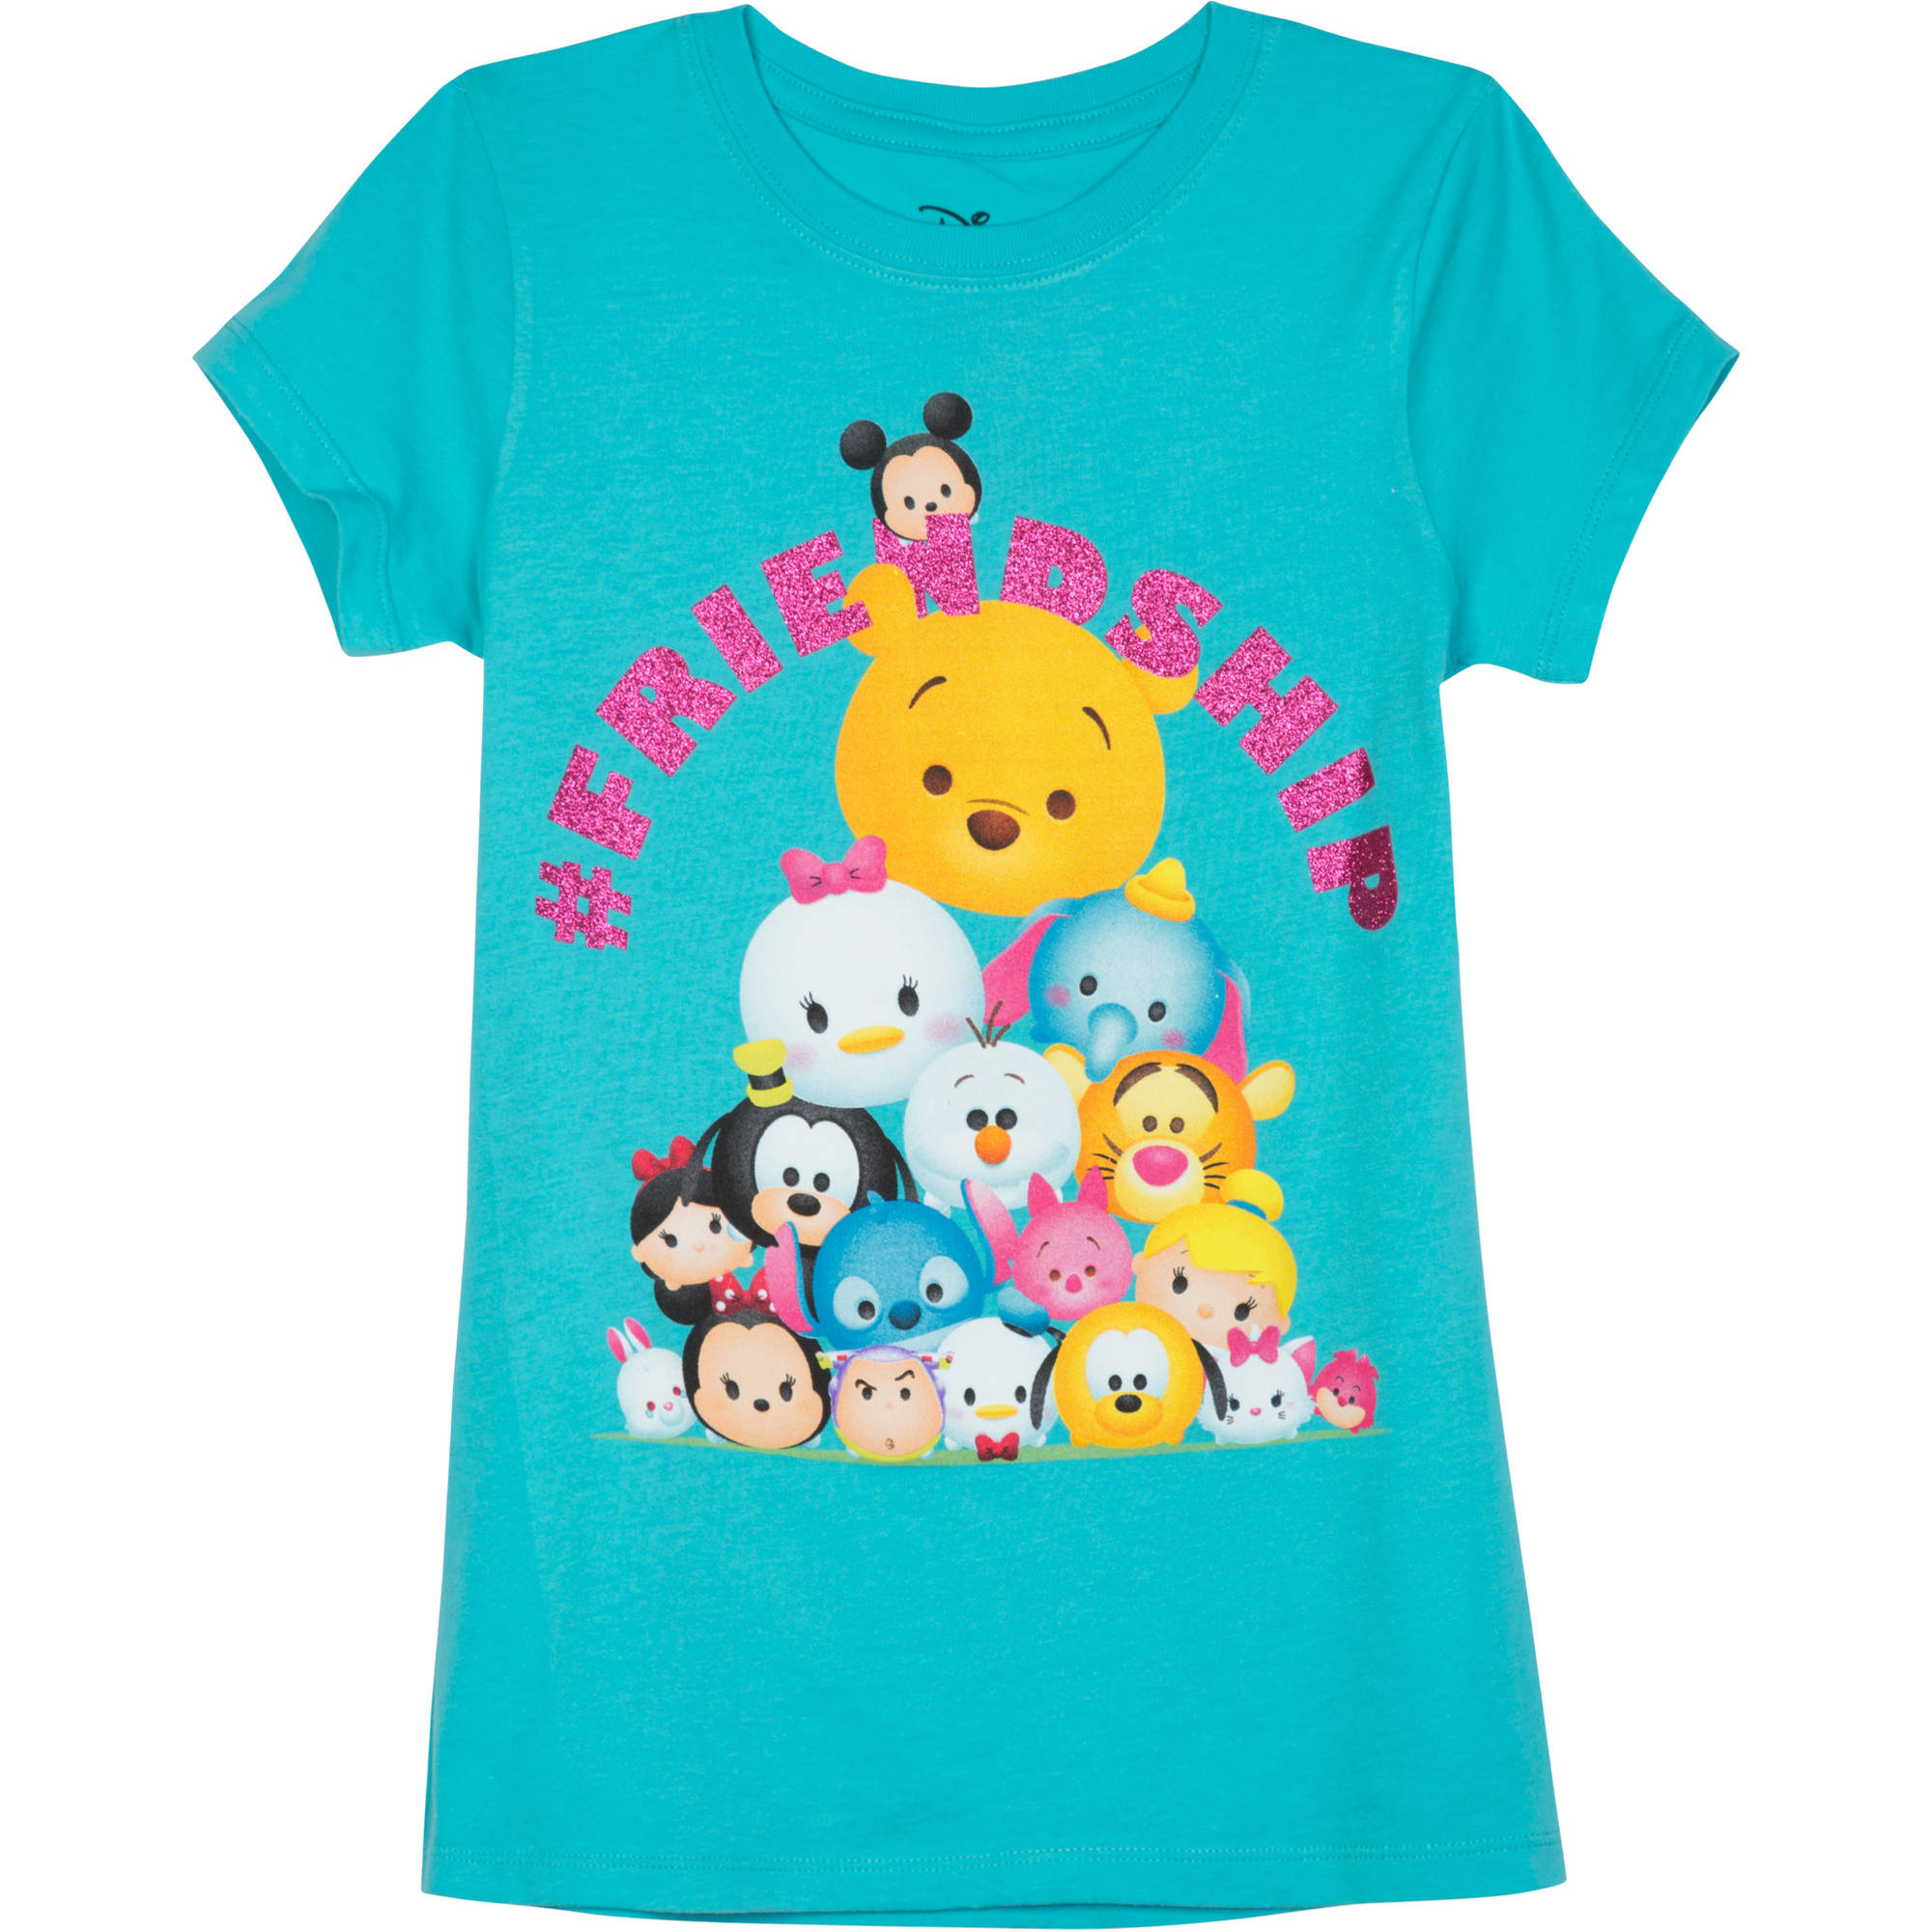 Tsum Tsum Girls' Friendship Short Sleeve Crew Neck Graphic Tee